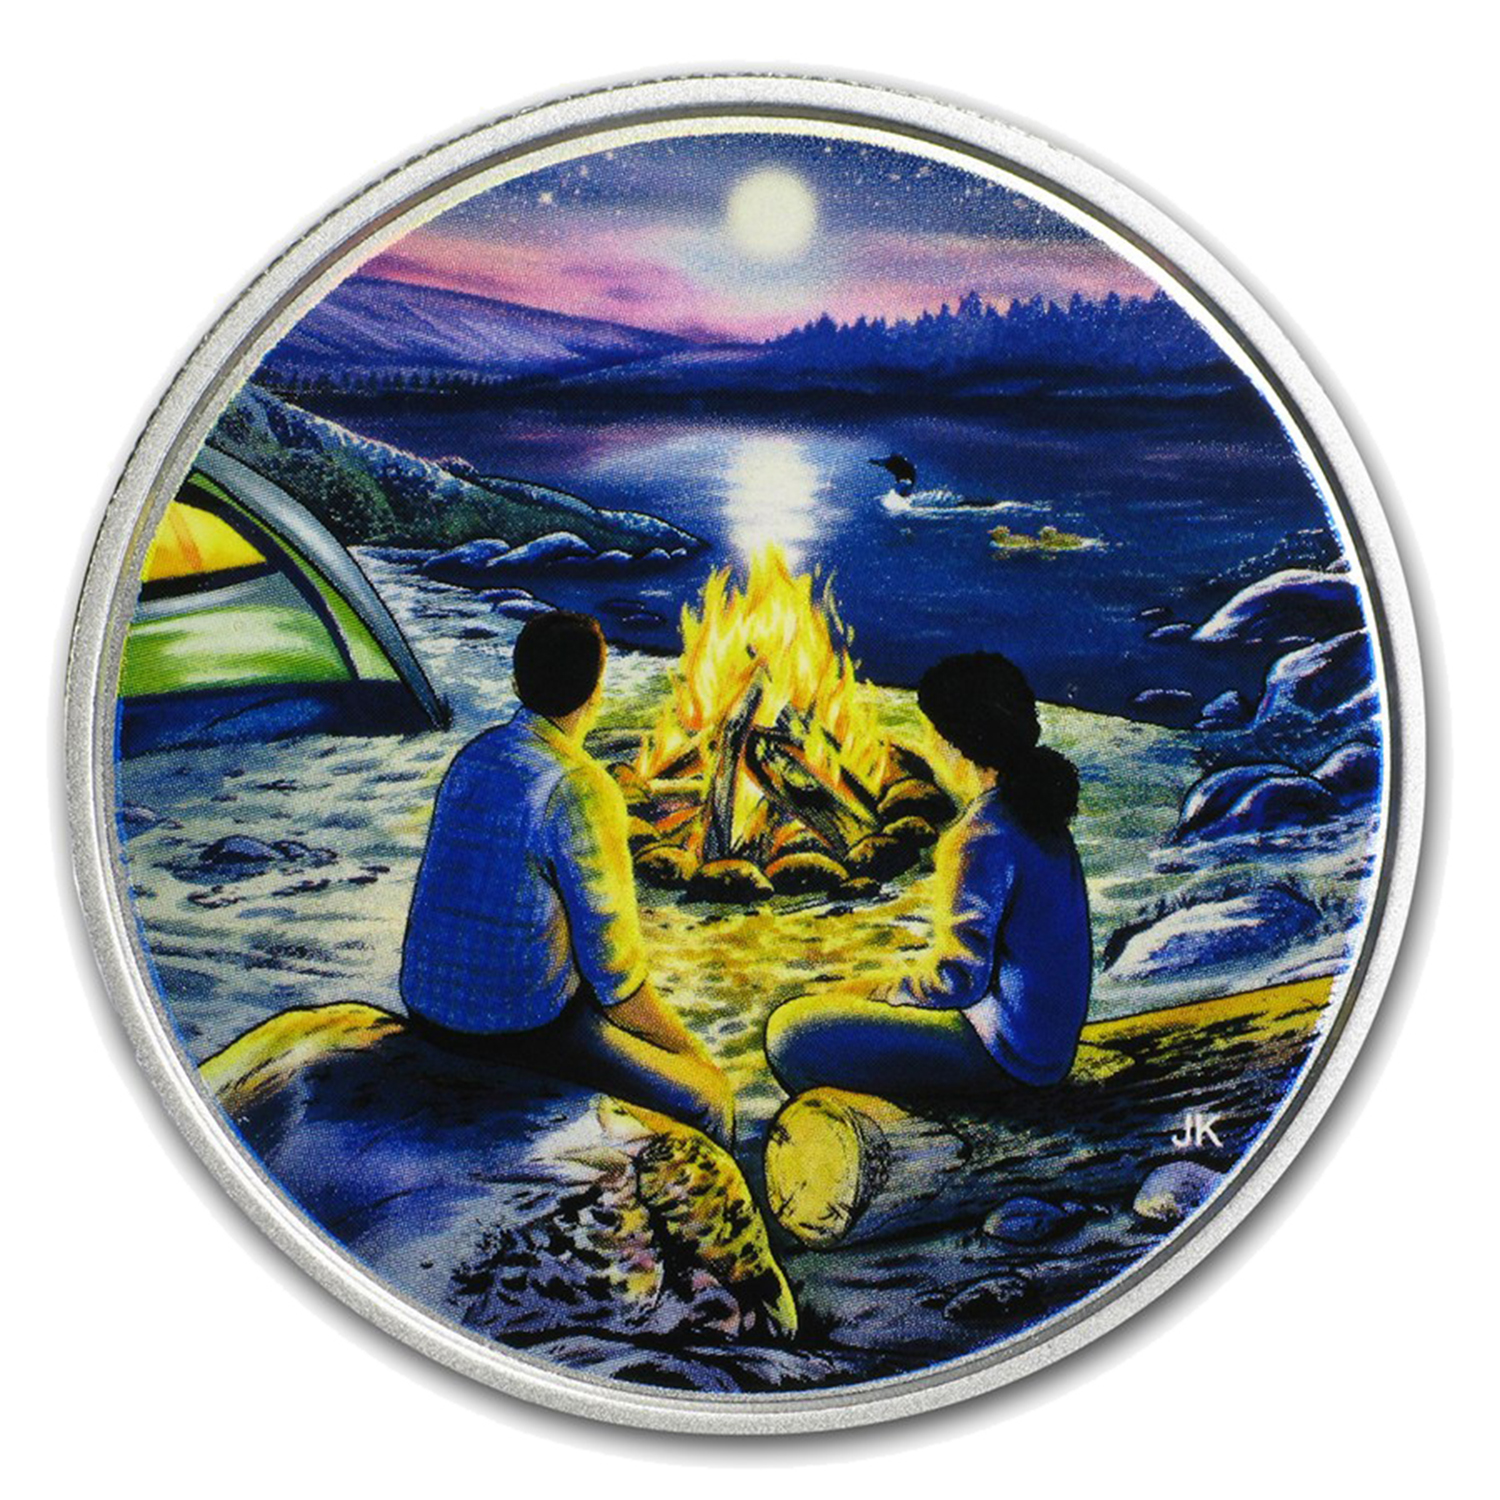 2017 RCM 3/4 oz Silver $15 Great Canadian Outdoors: Campfire